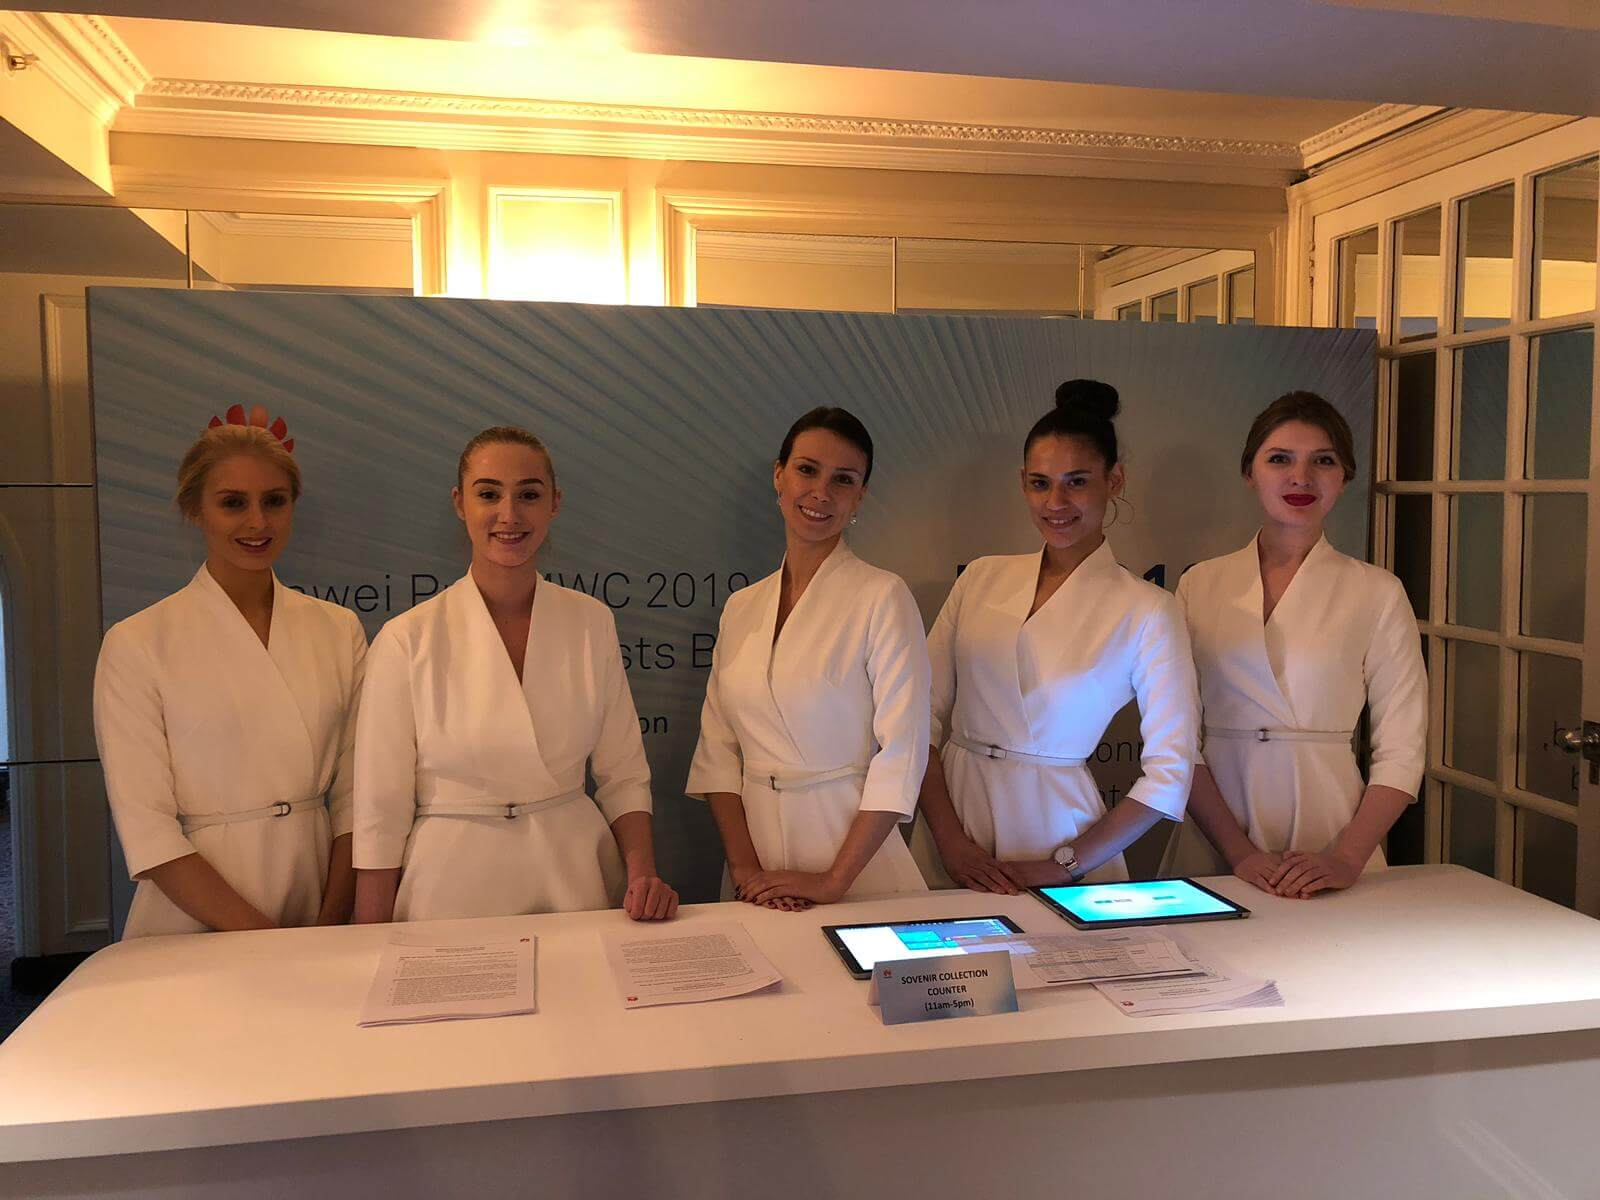 Hostesses Shine At Huawei MWC Event In London